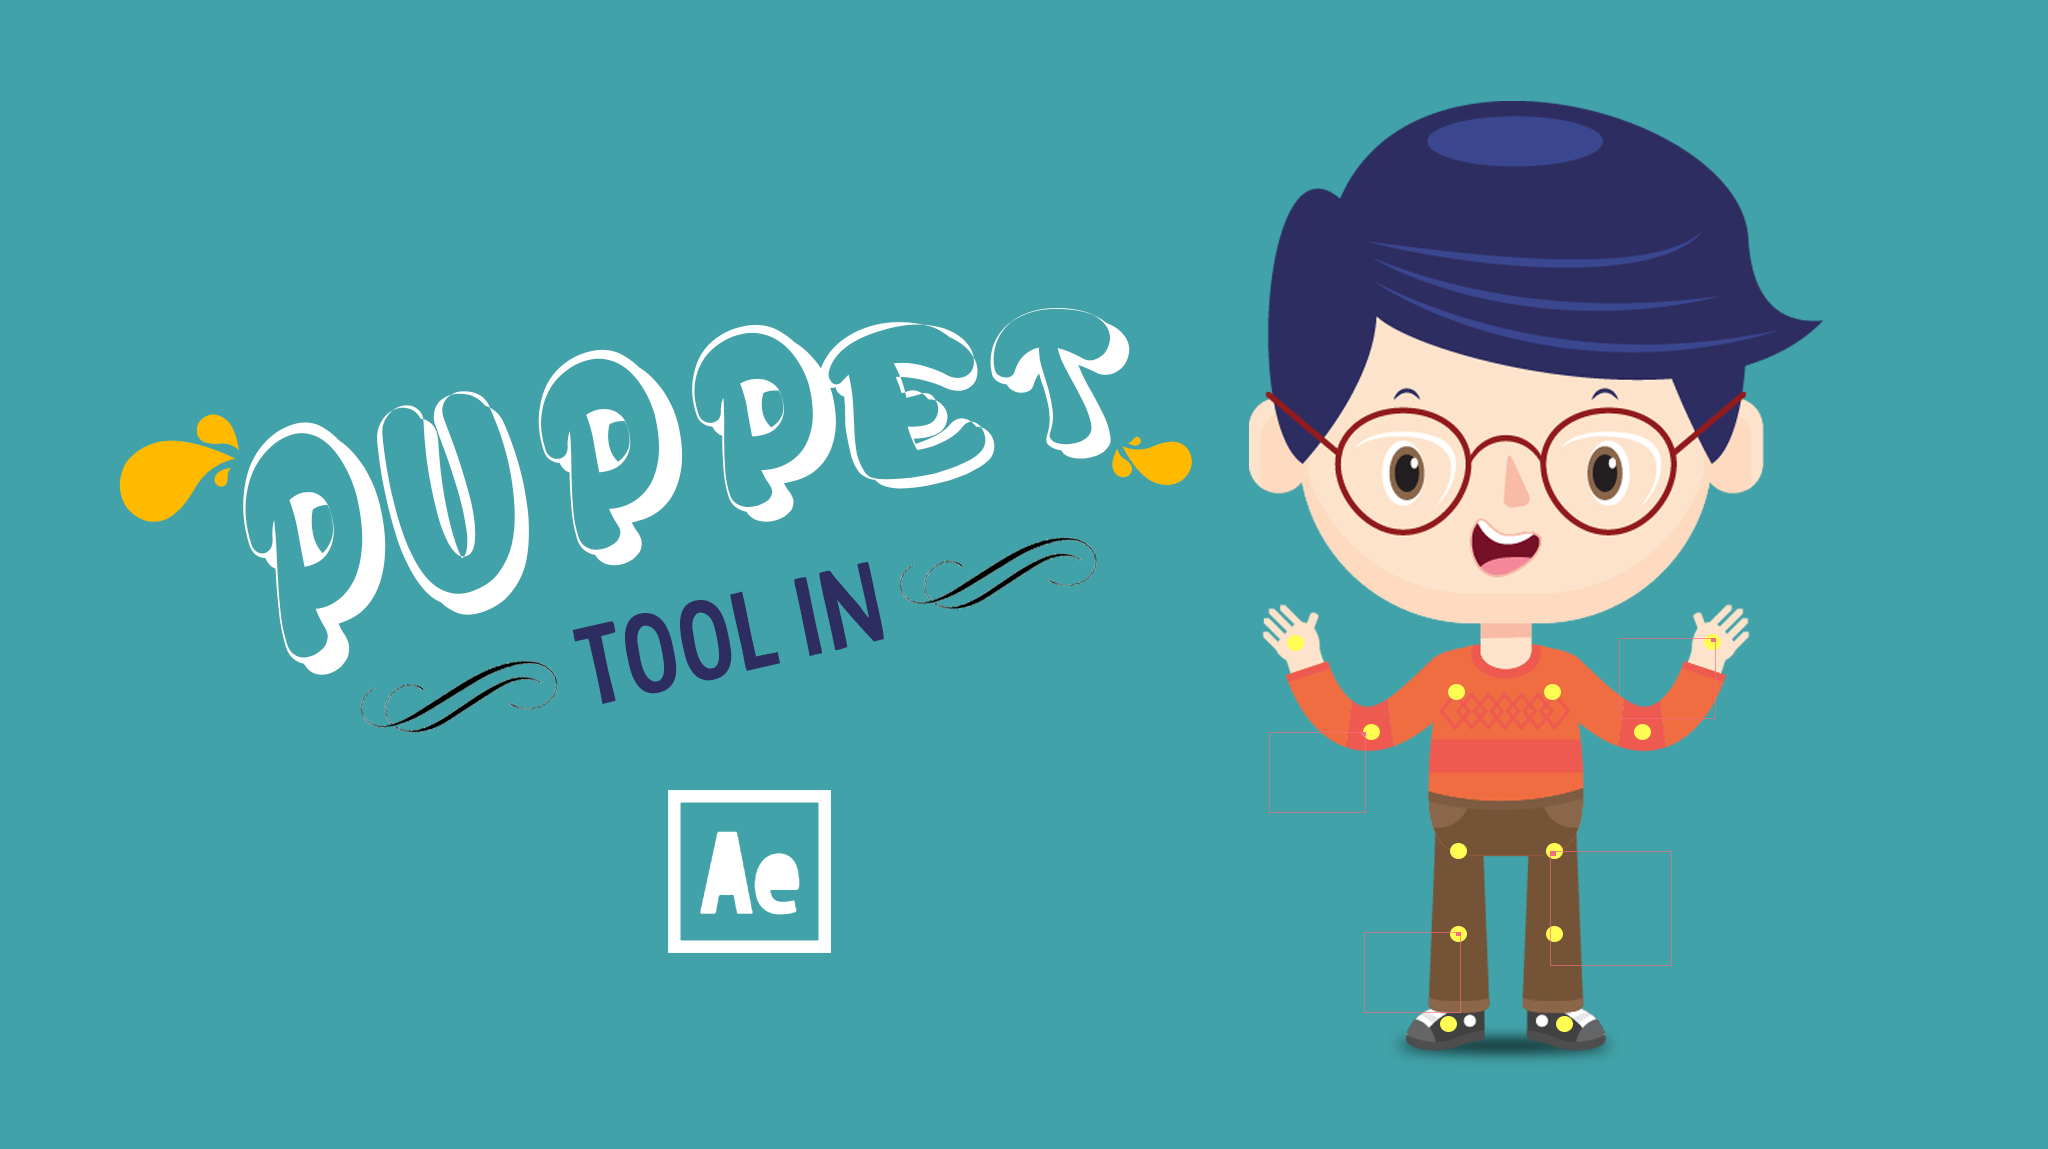 Puppet Tool in After Effect  - skillshare Free Course With skillshare Coupon Code